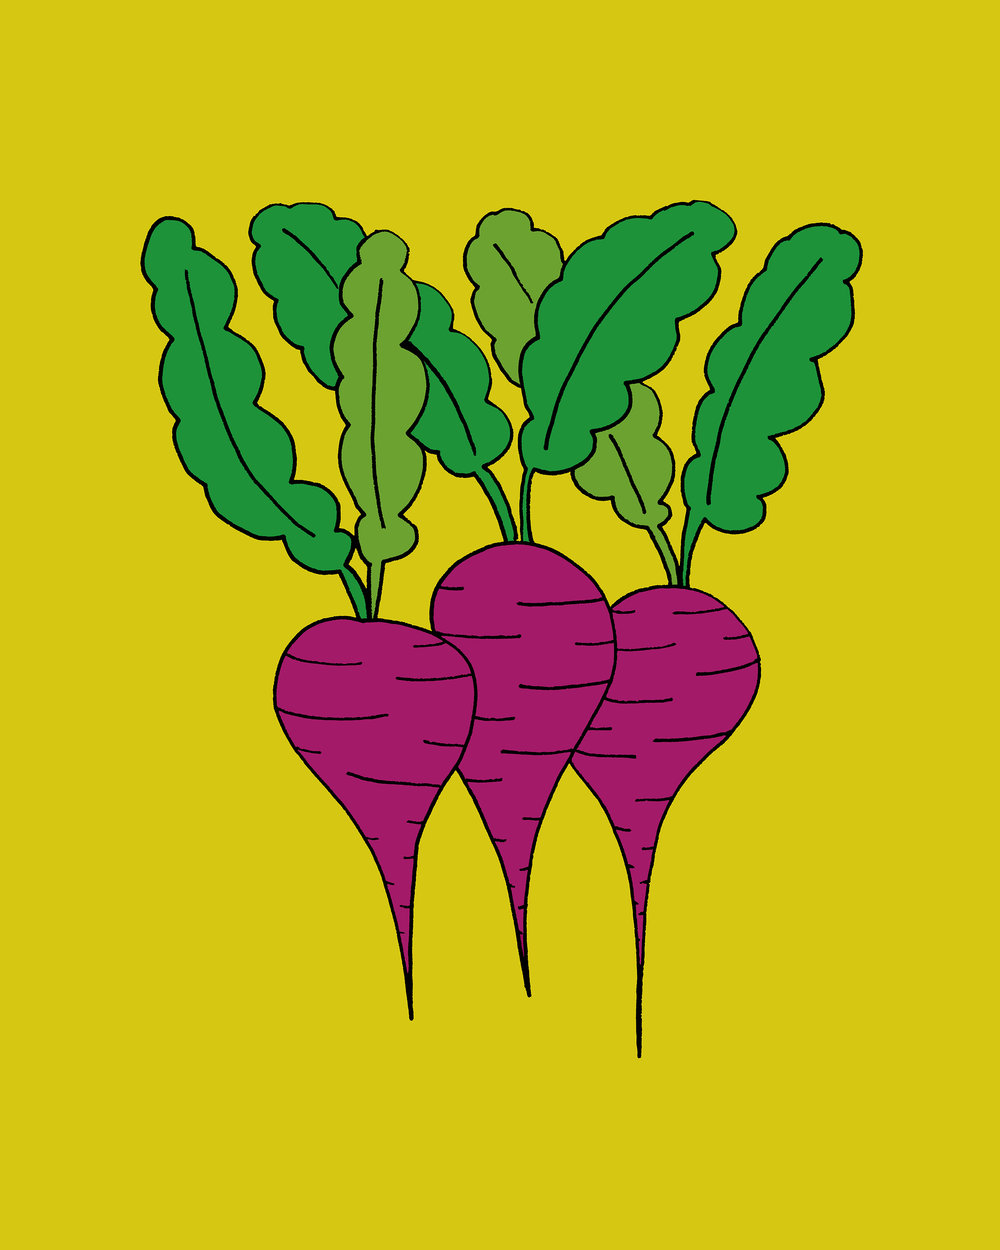 Beets Illustration by Emma Freeman Designs